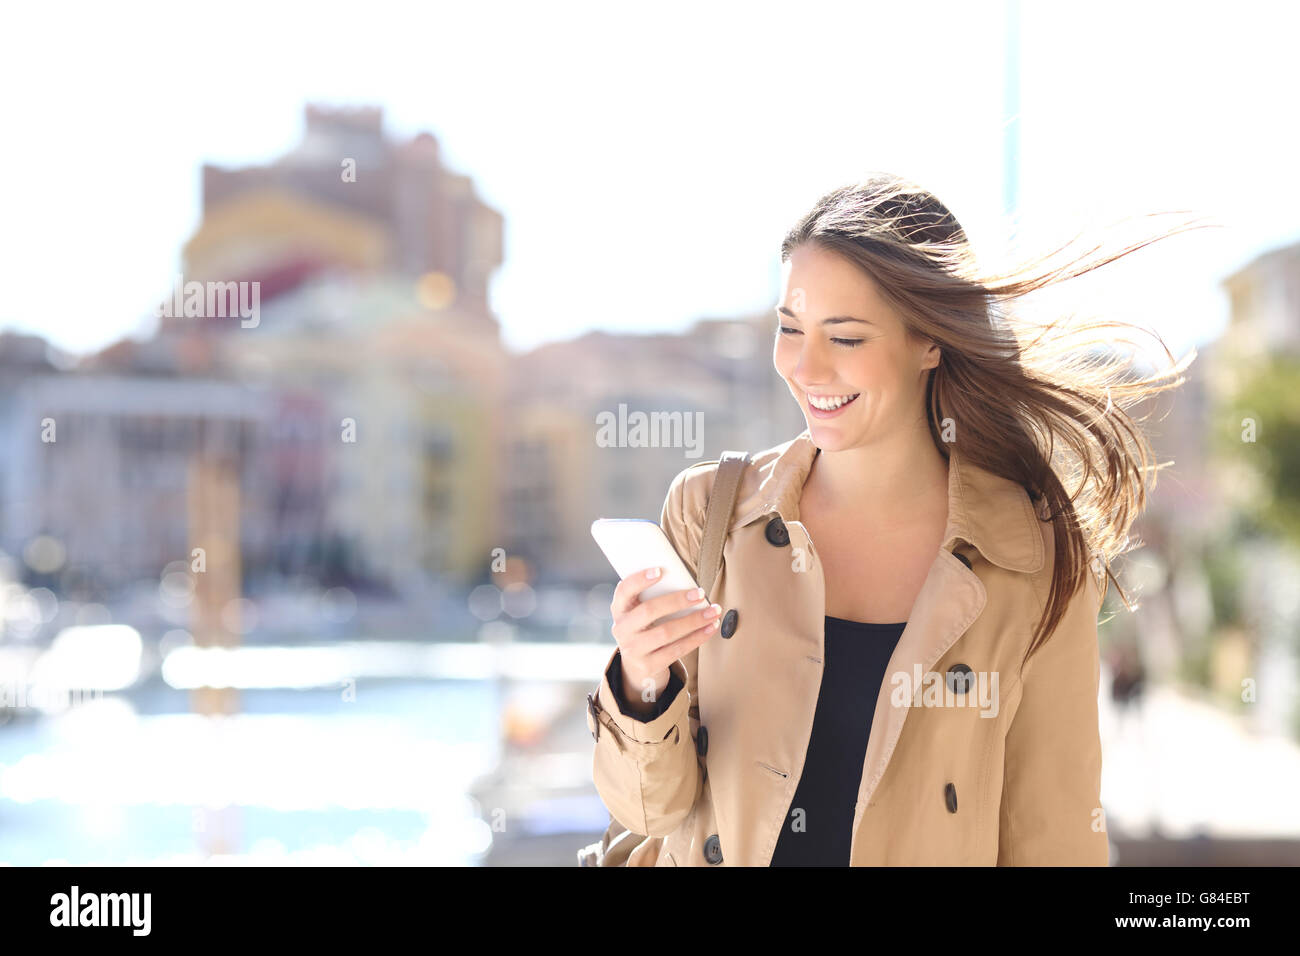 Happy beautiful woman walking and writing or reading sms messages on line on a smart phone - Stock Image